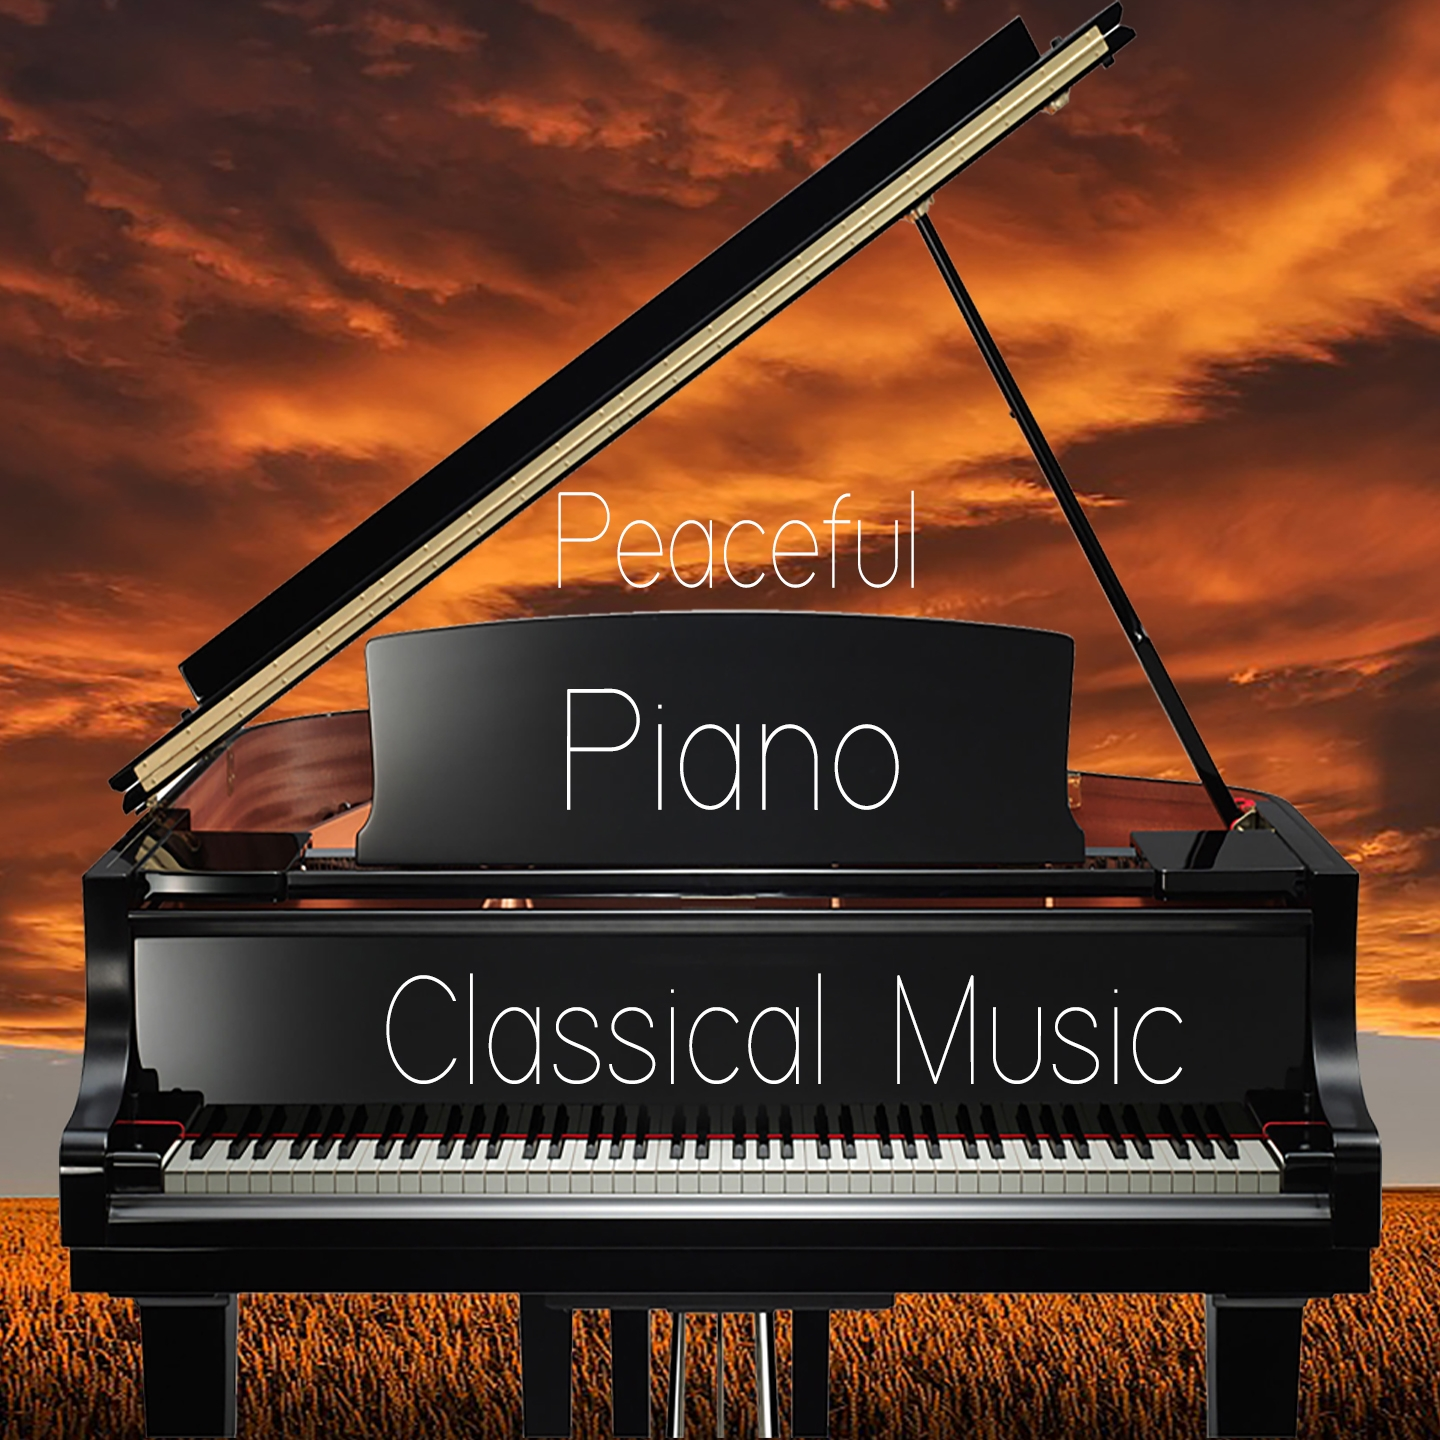 Peaceful Piano Classical Music